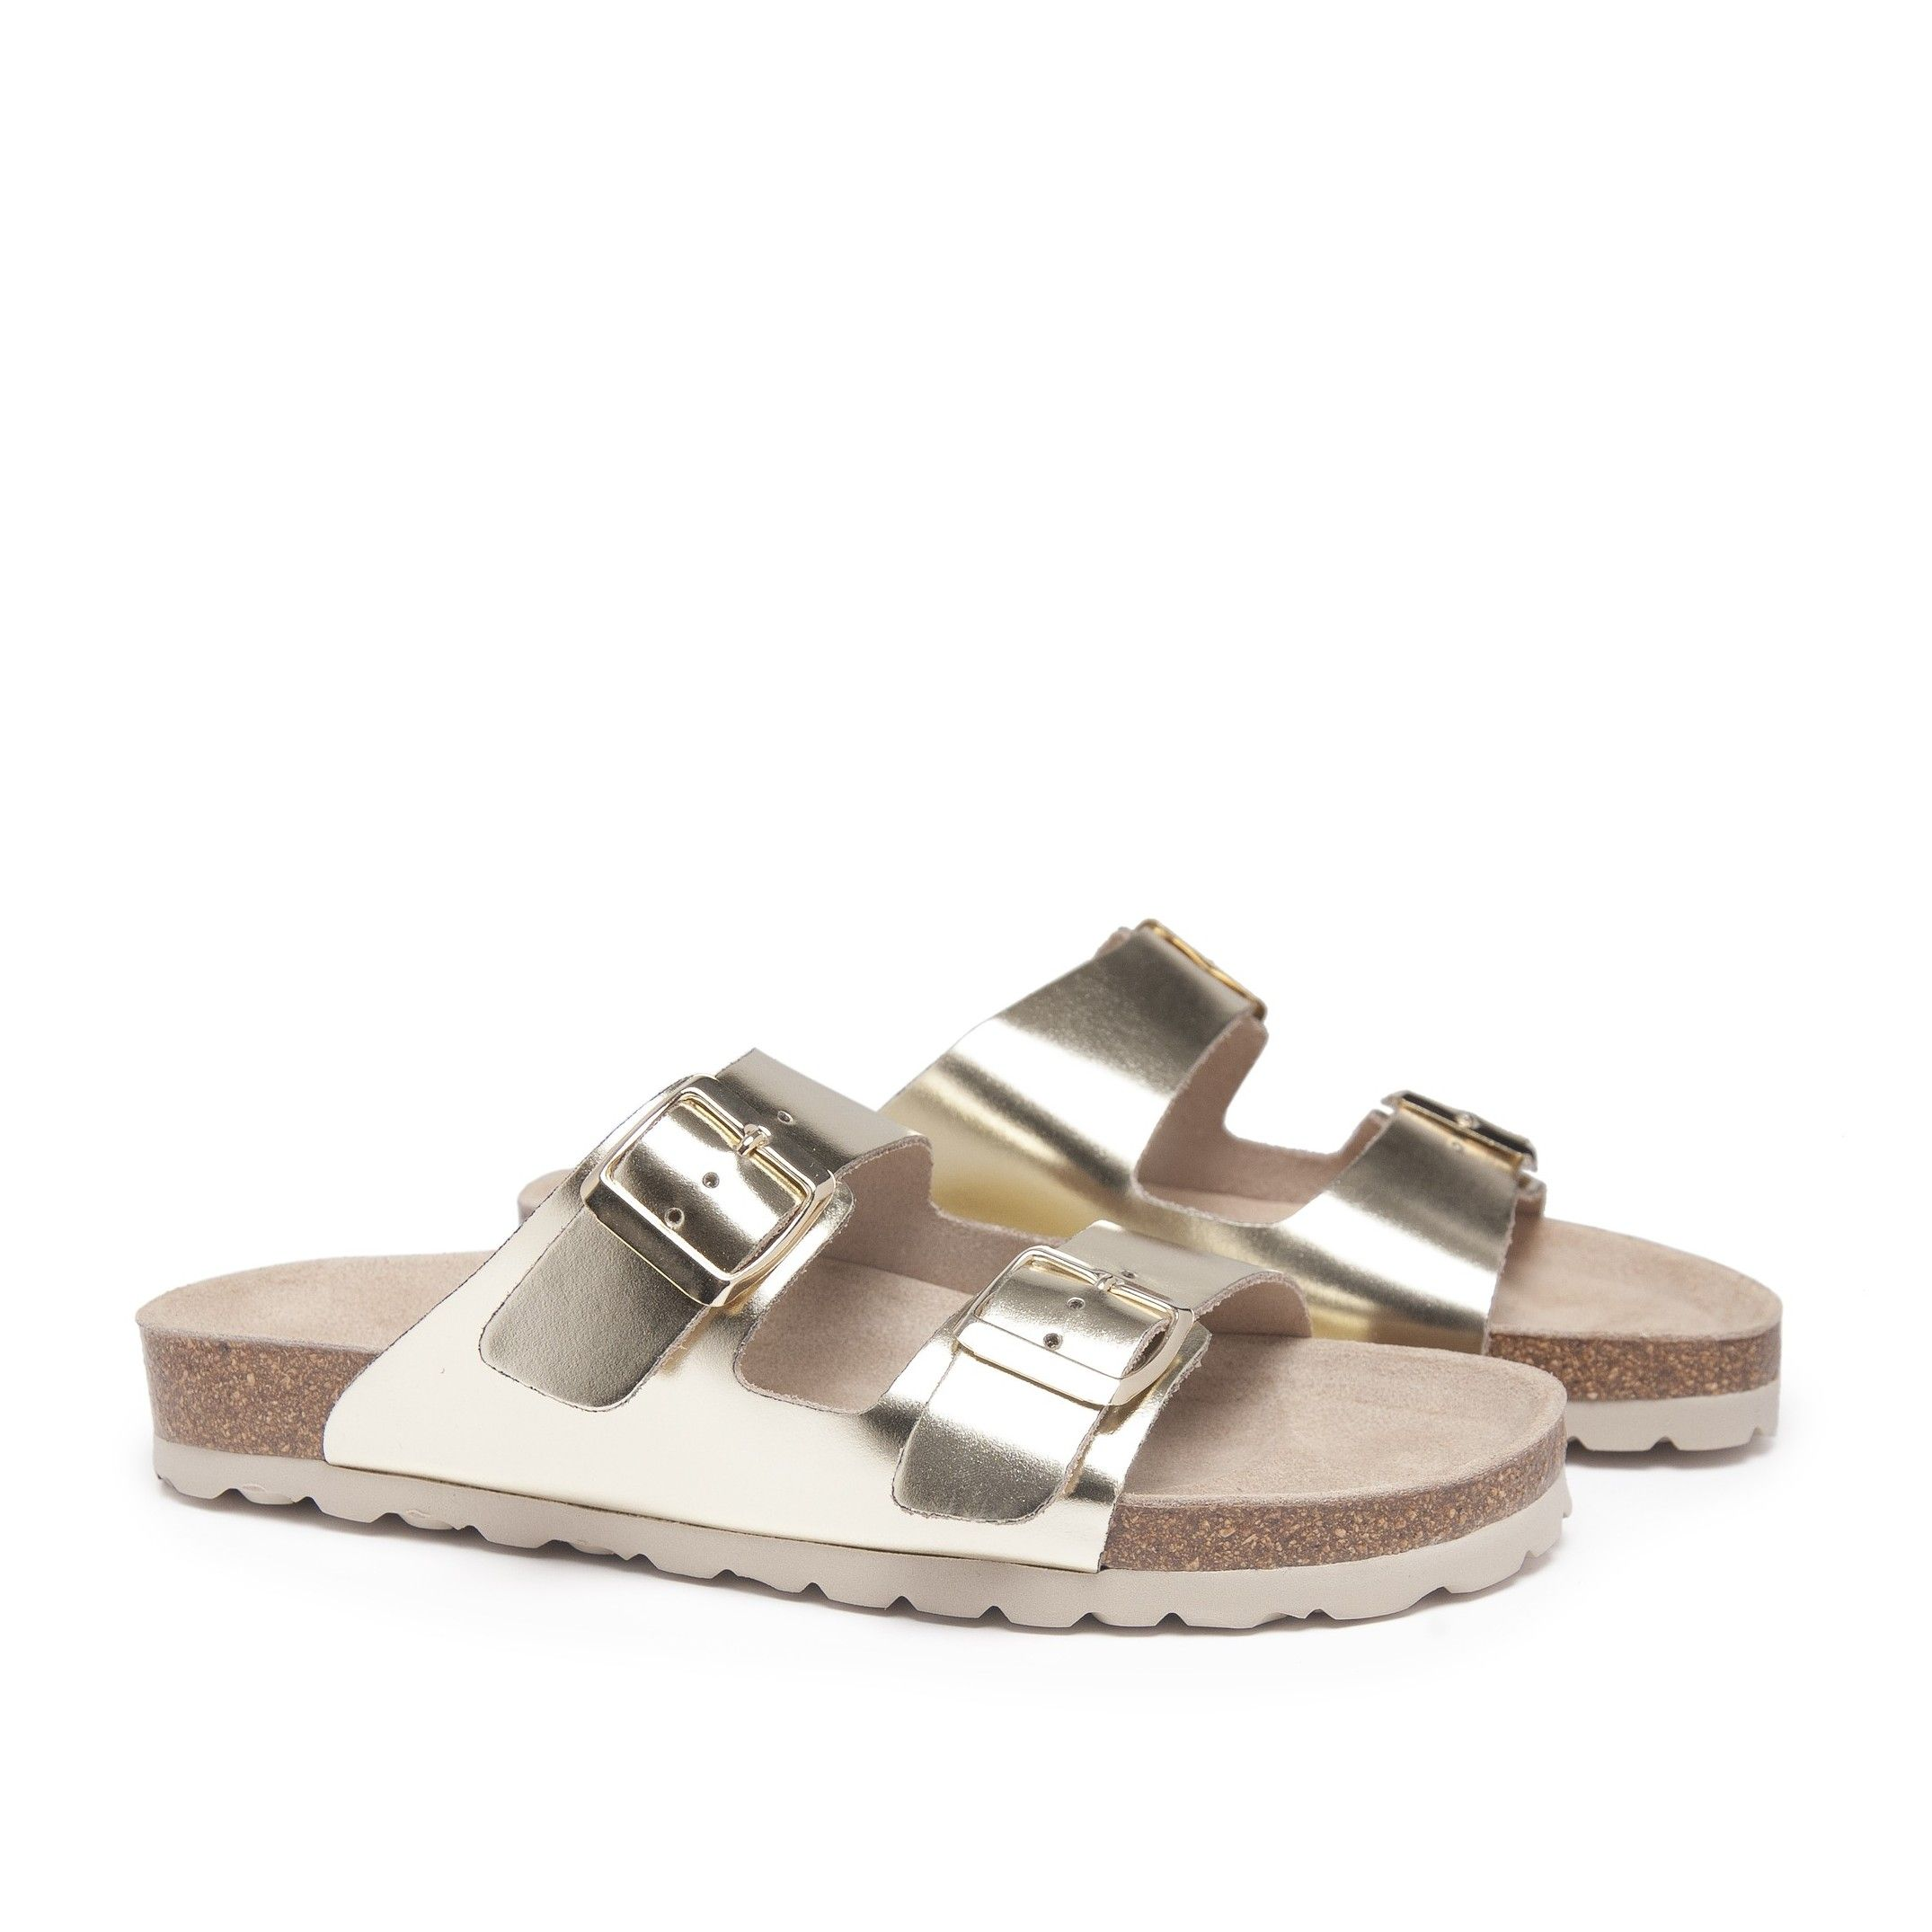 Bio Sandals for Women Platine Shoes Maria Barcelo